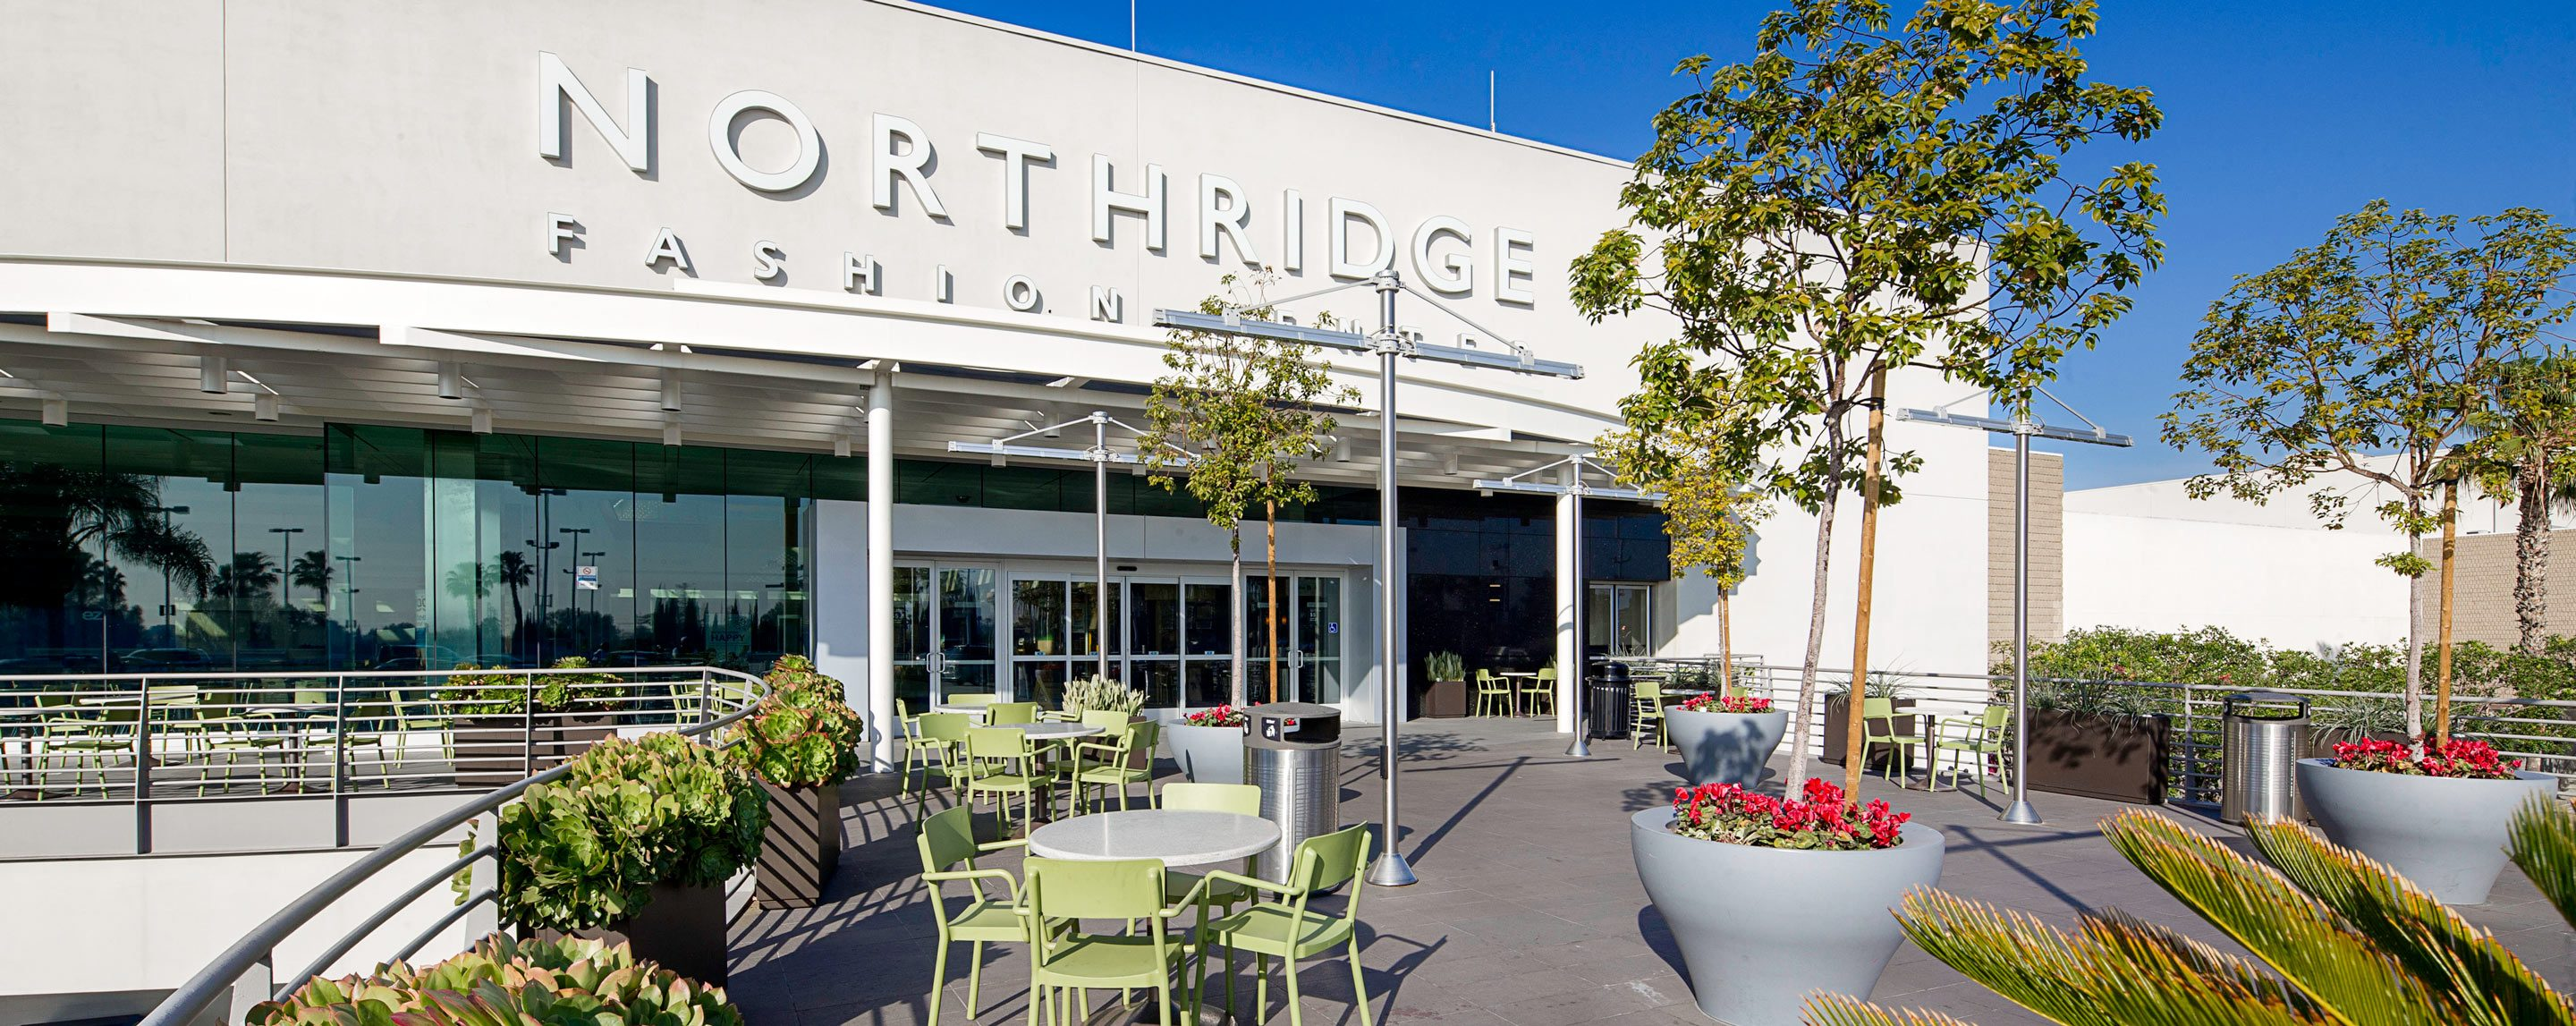 An exterior shot of the Northridge Fashion Center. Palm trees and chairs are visible.